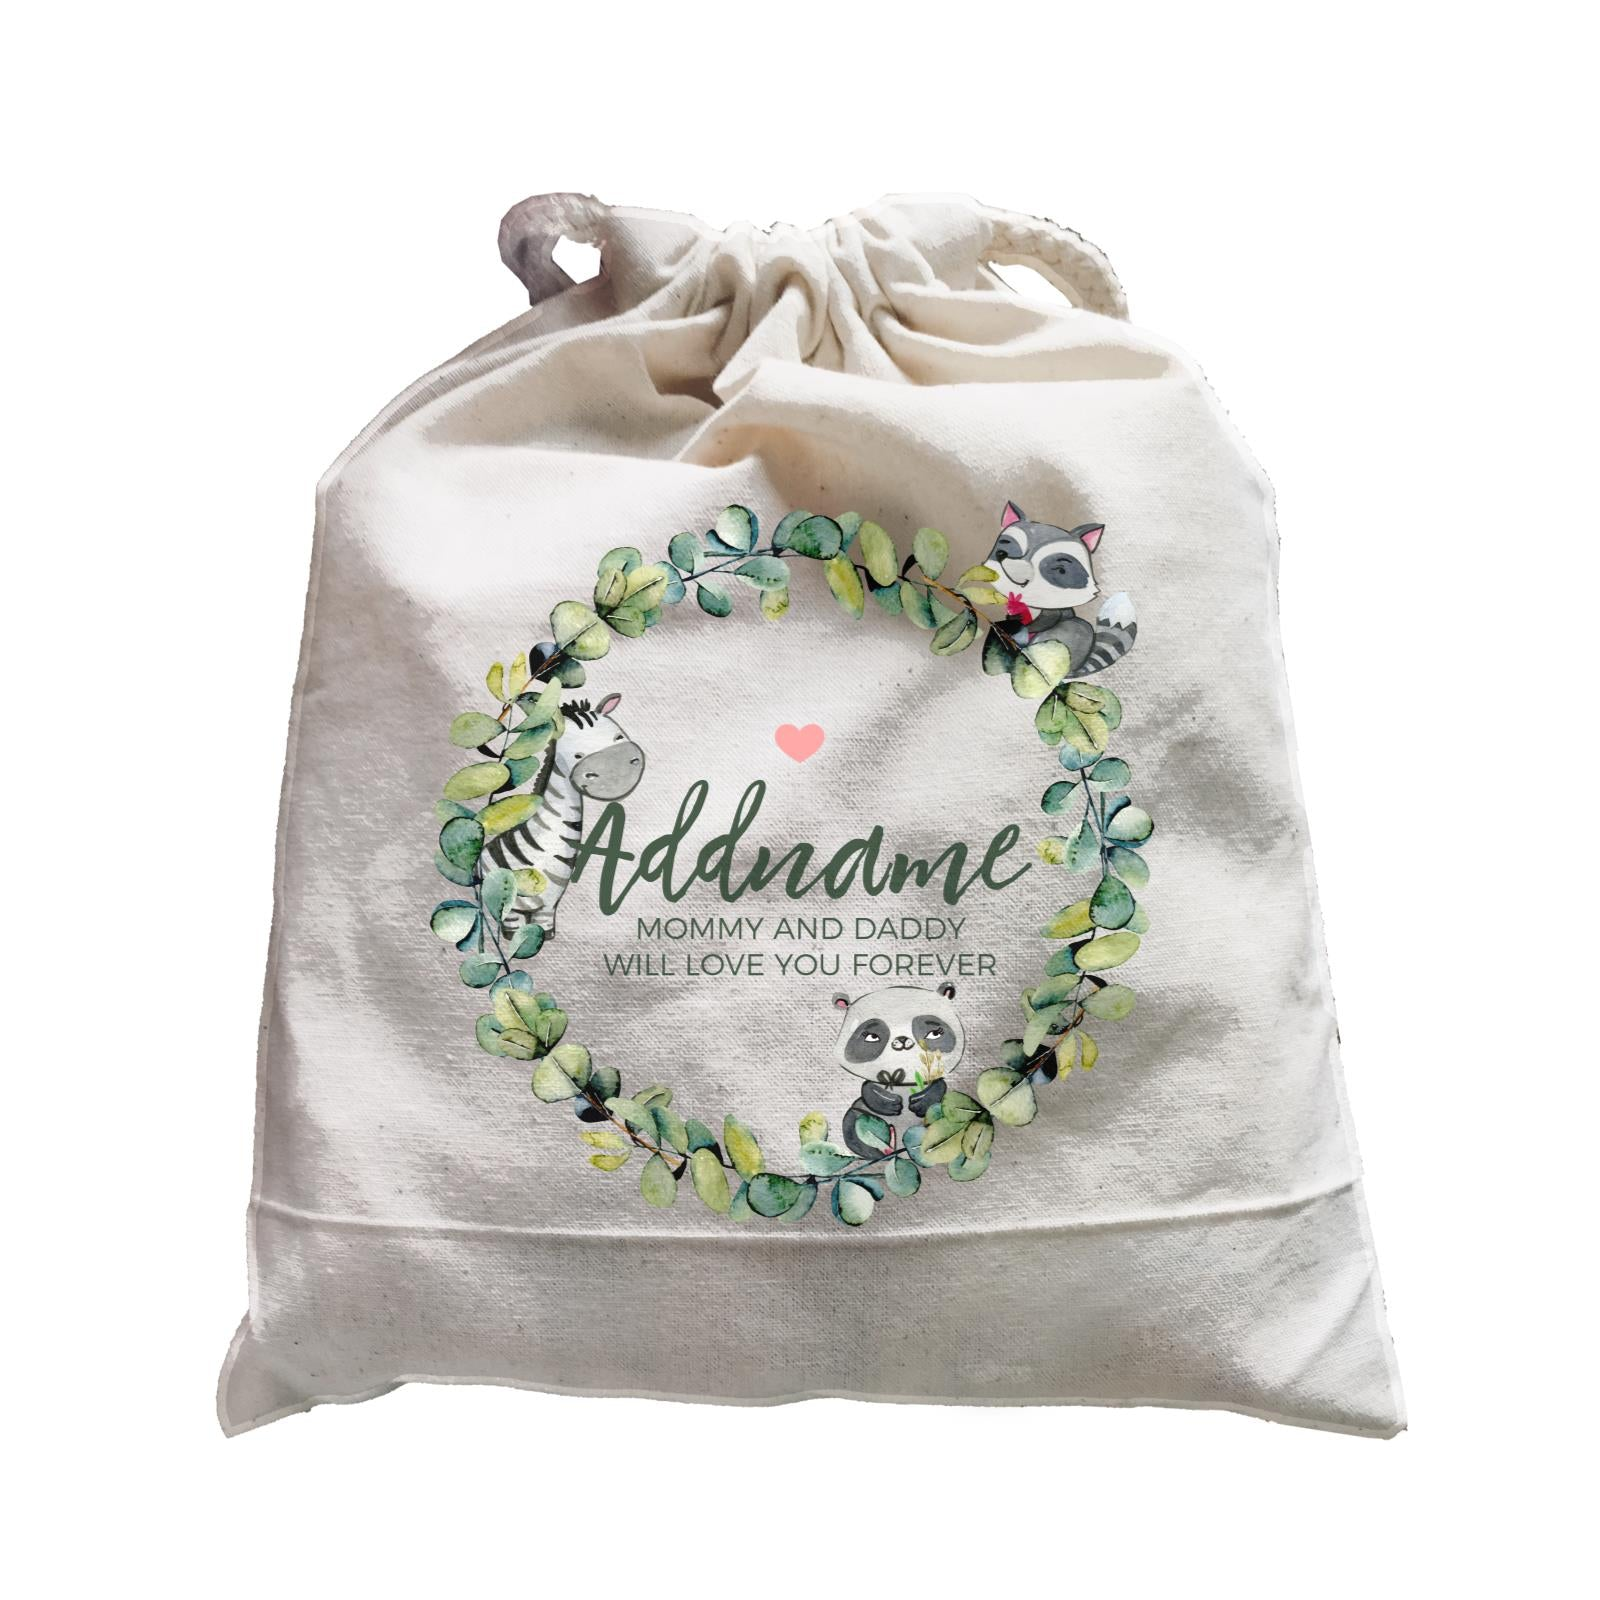 Watercolour Panda Zebra and Racoon Leaf Wreath Personalizable with Name and Text Satchel